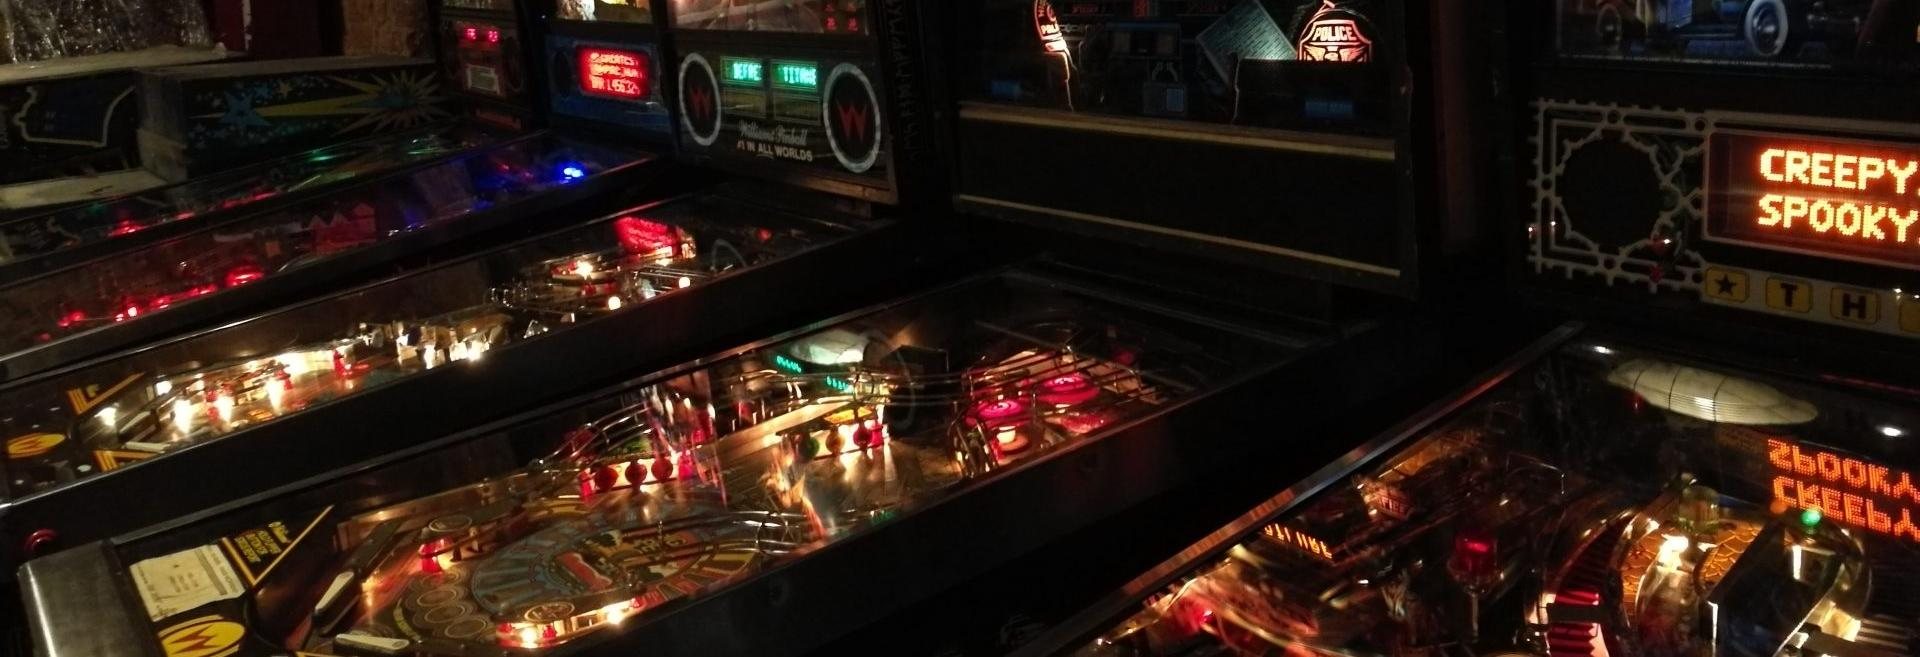 Wanted to buy pinball machines video games consoles and hand held gaming systems